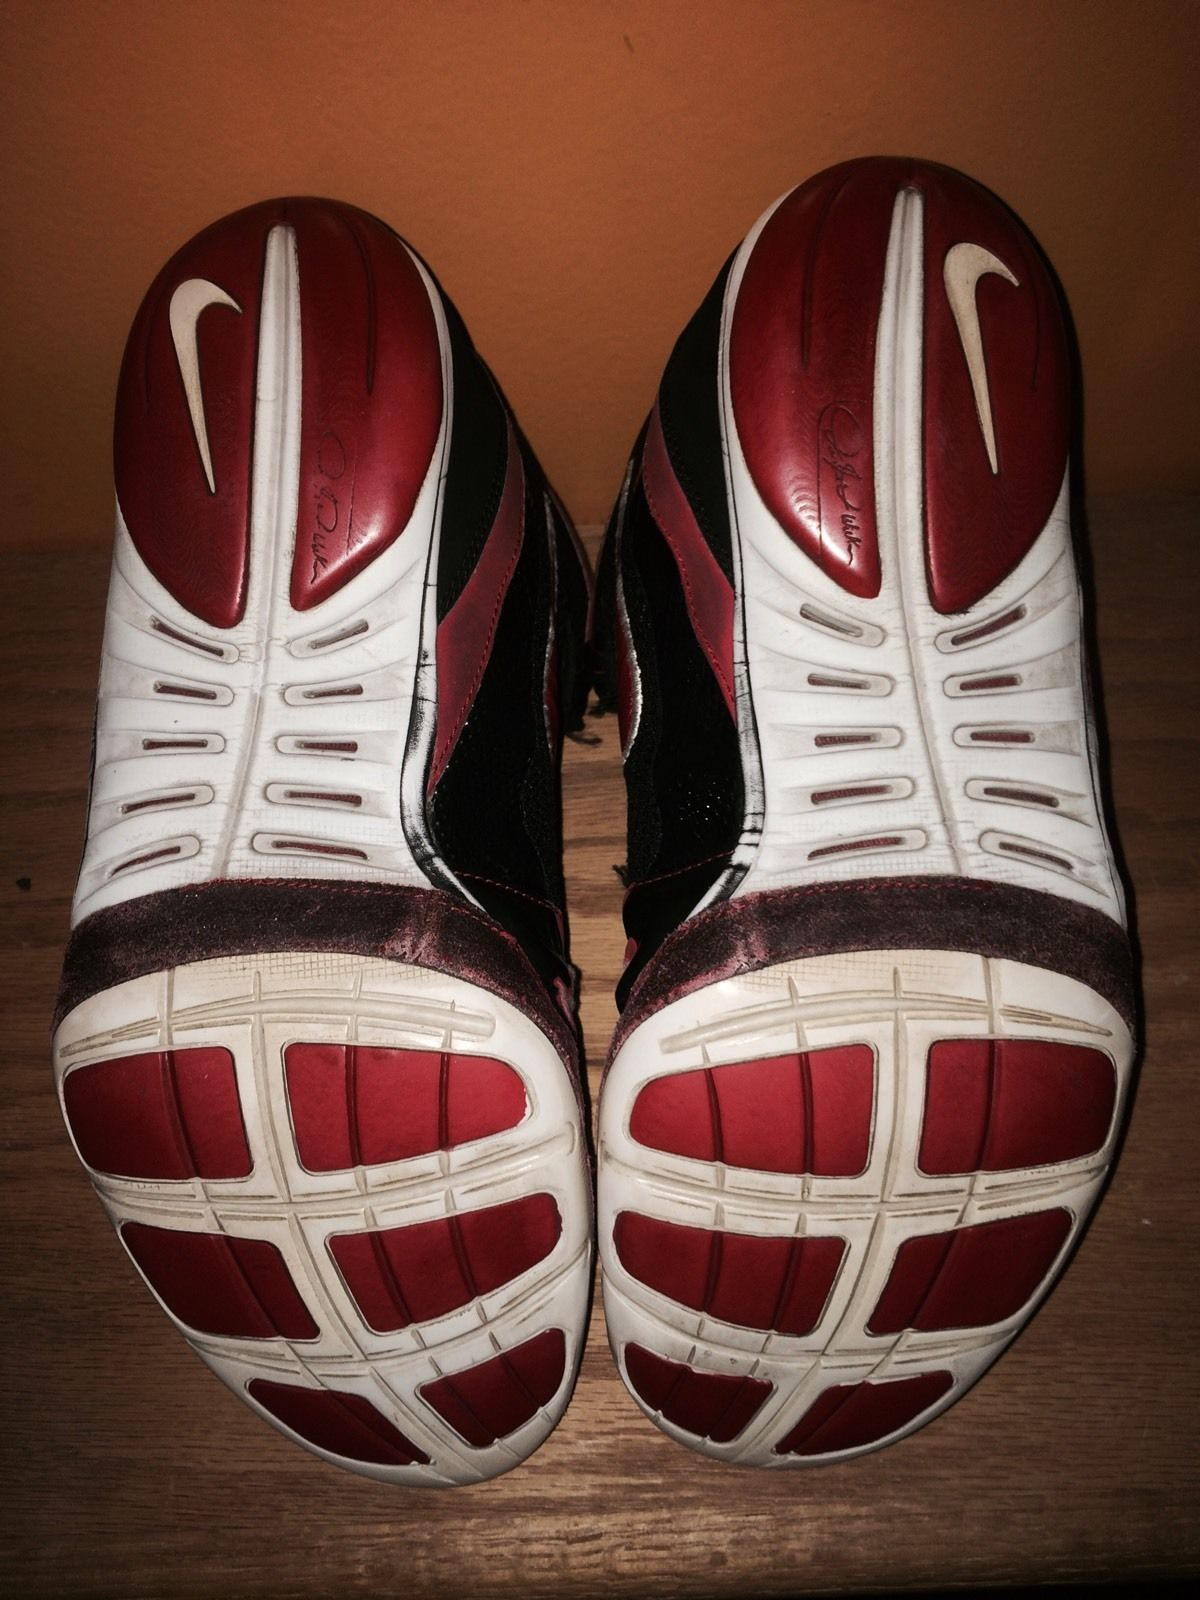 RARE Nike Freek Wrestling Shoe Size 11 5 | eBay -- Guess whose the signature